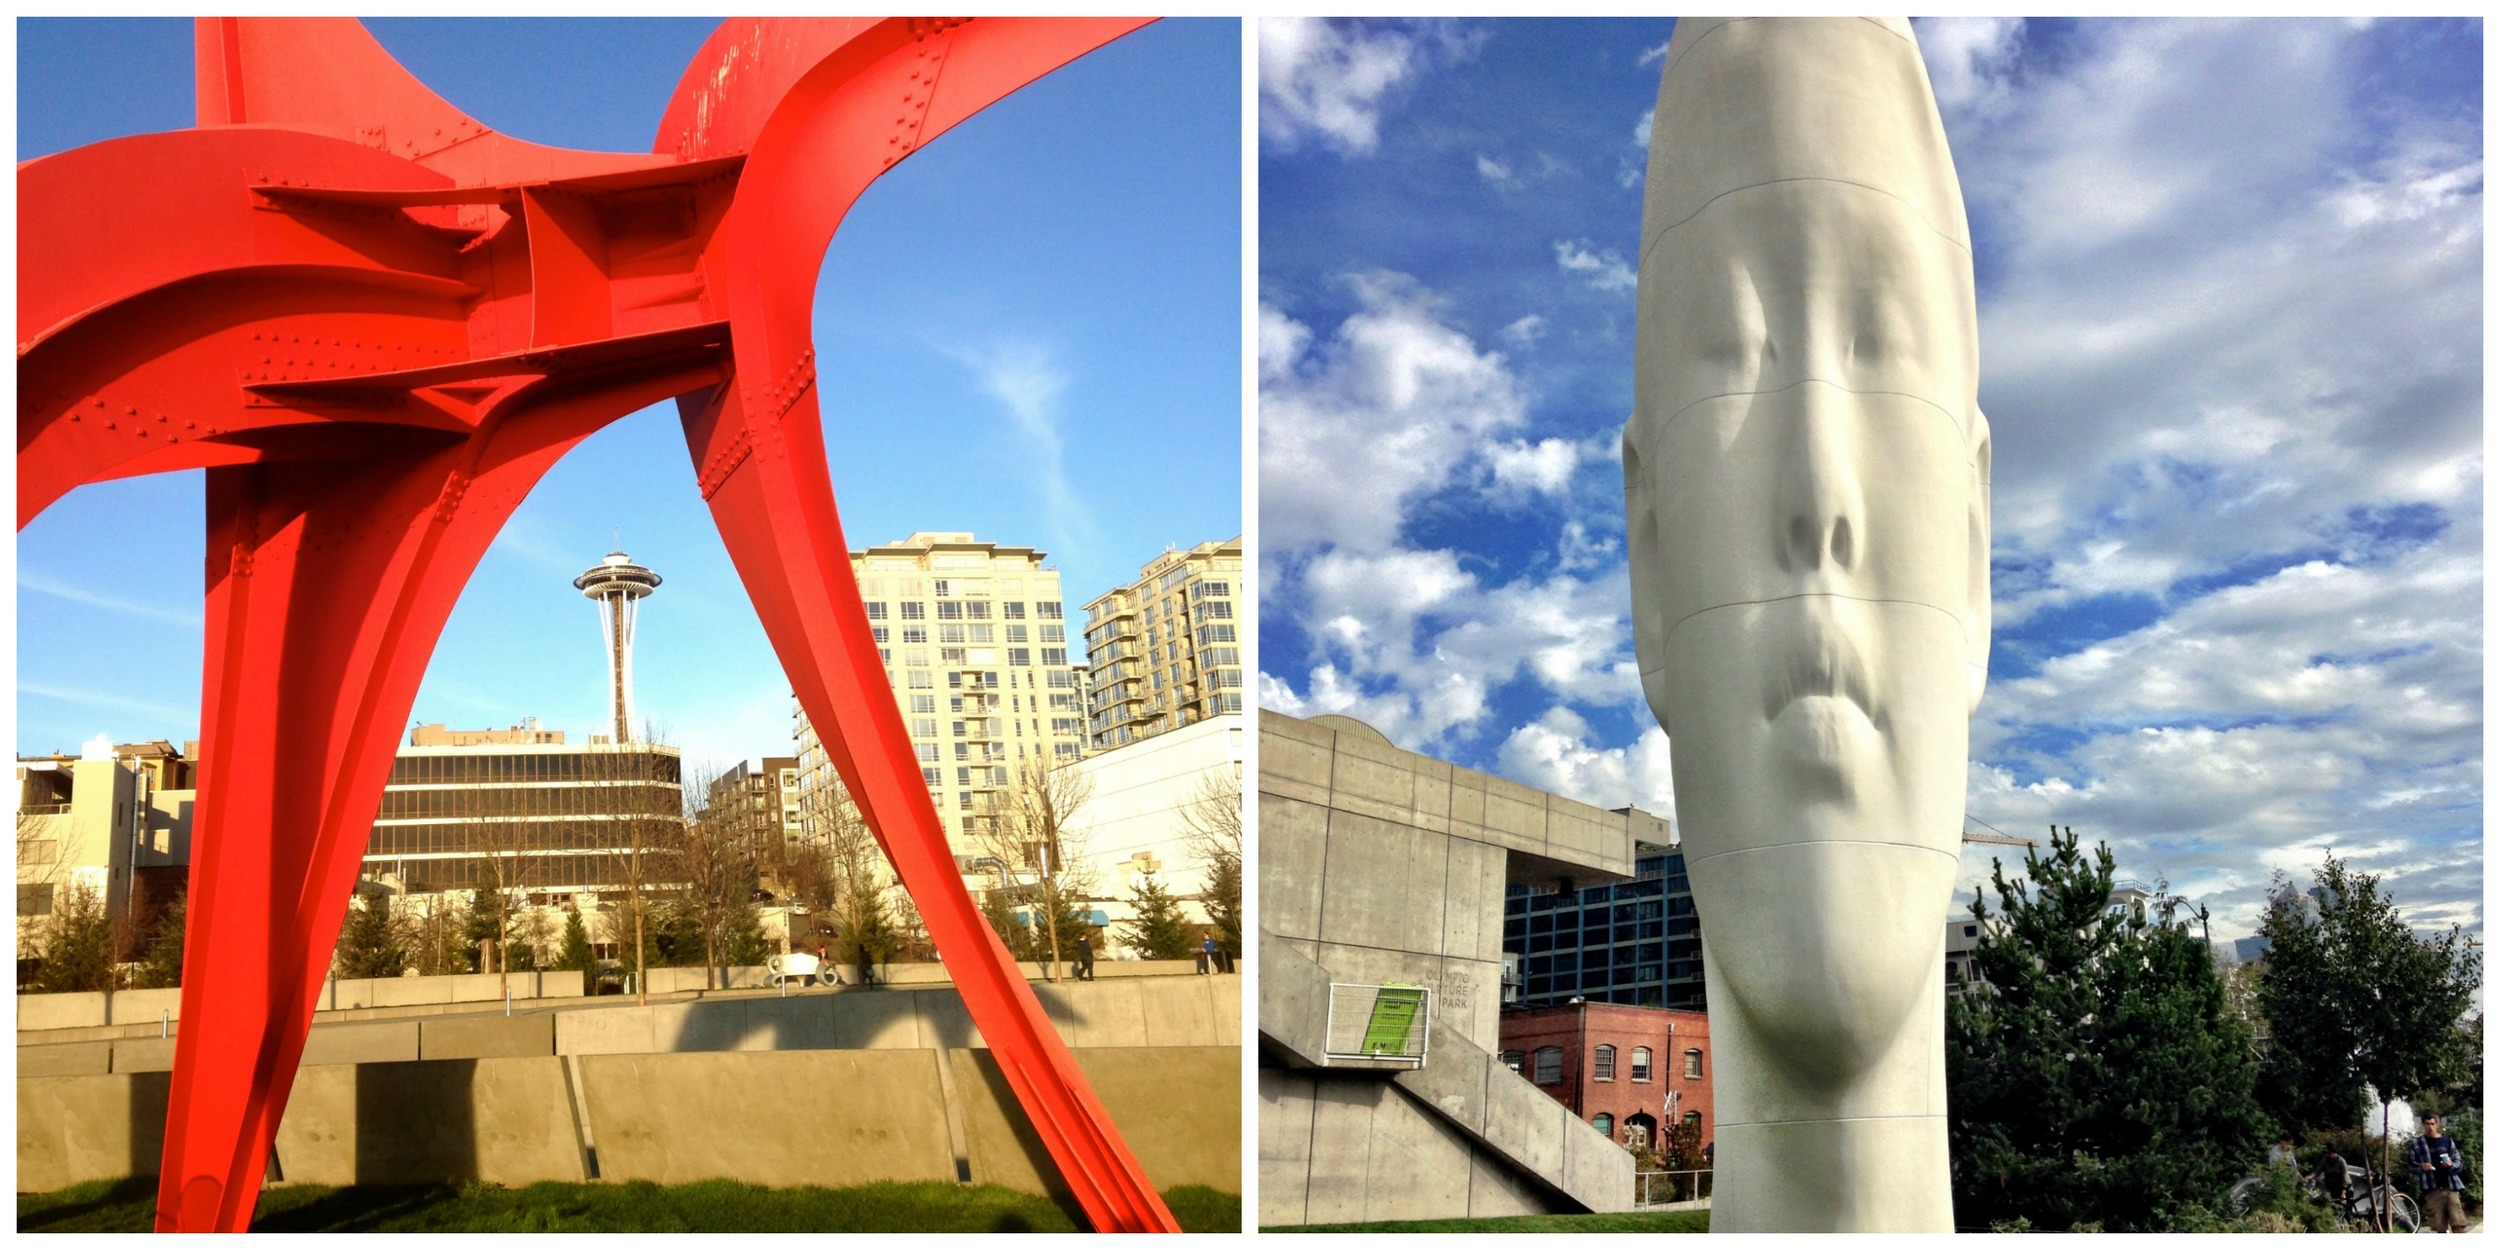 Left: Eagle by Alexander Calder. Right: Echo by Jaume Plensa.